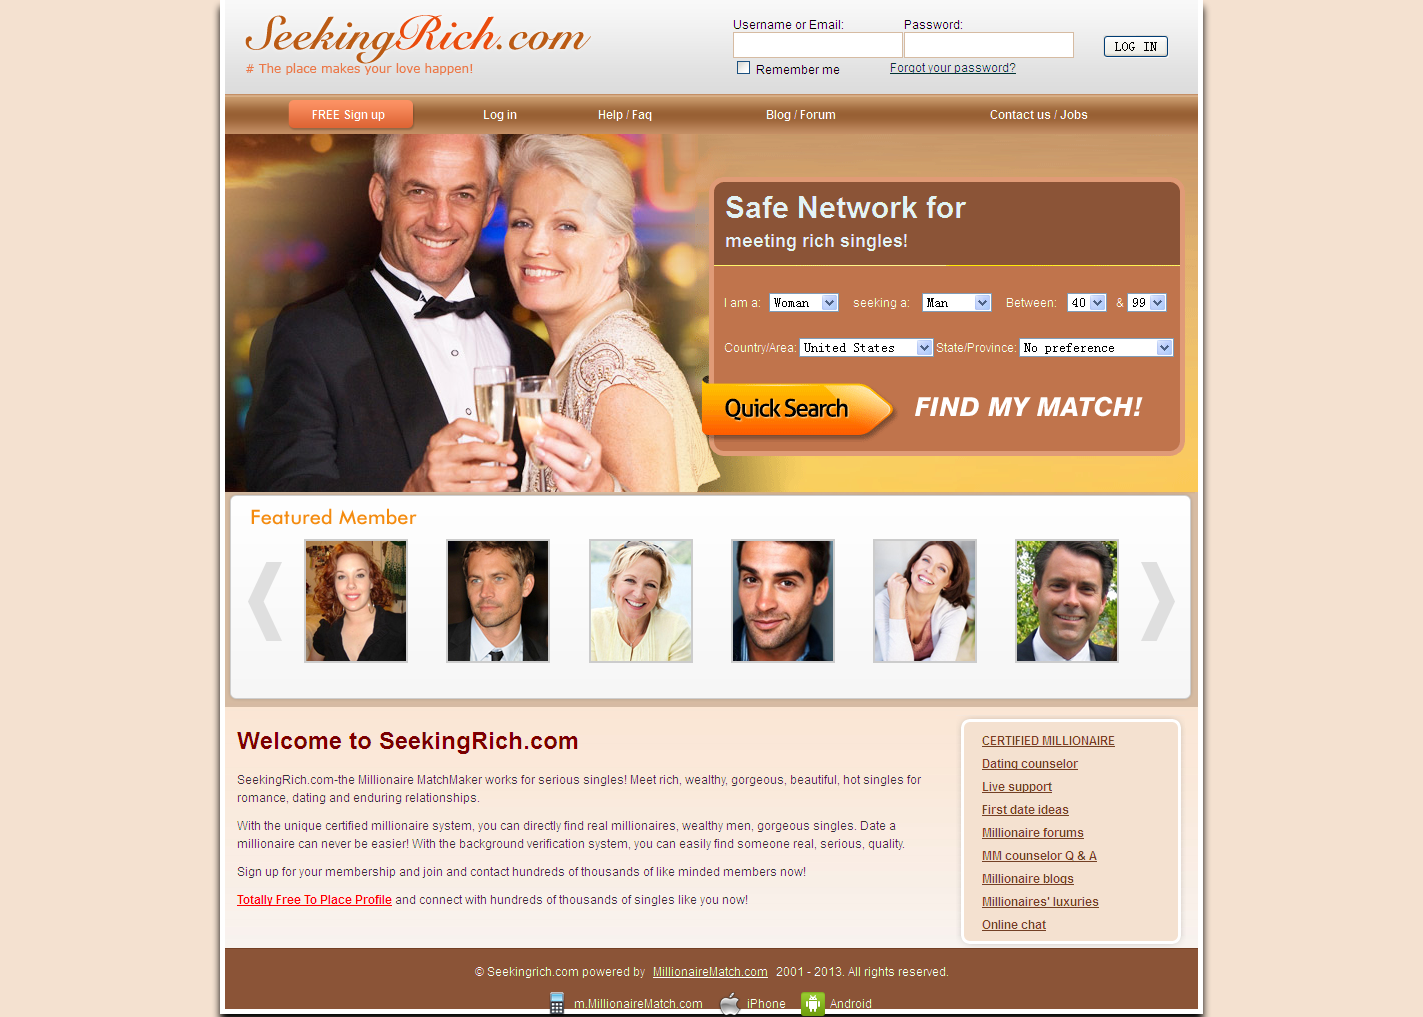 allerton singles dating site Allerton's best free dating site 100% free online dating for allerton singles at mingle2com our free personal ads are full of single women and men in allerton looking for serious relationships, a little online flirtation, or new friends to go out with.